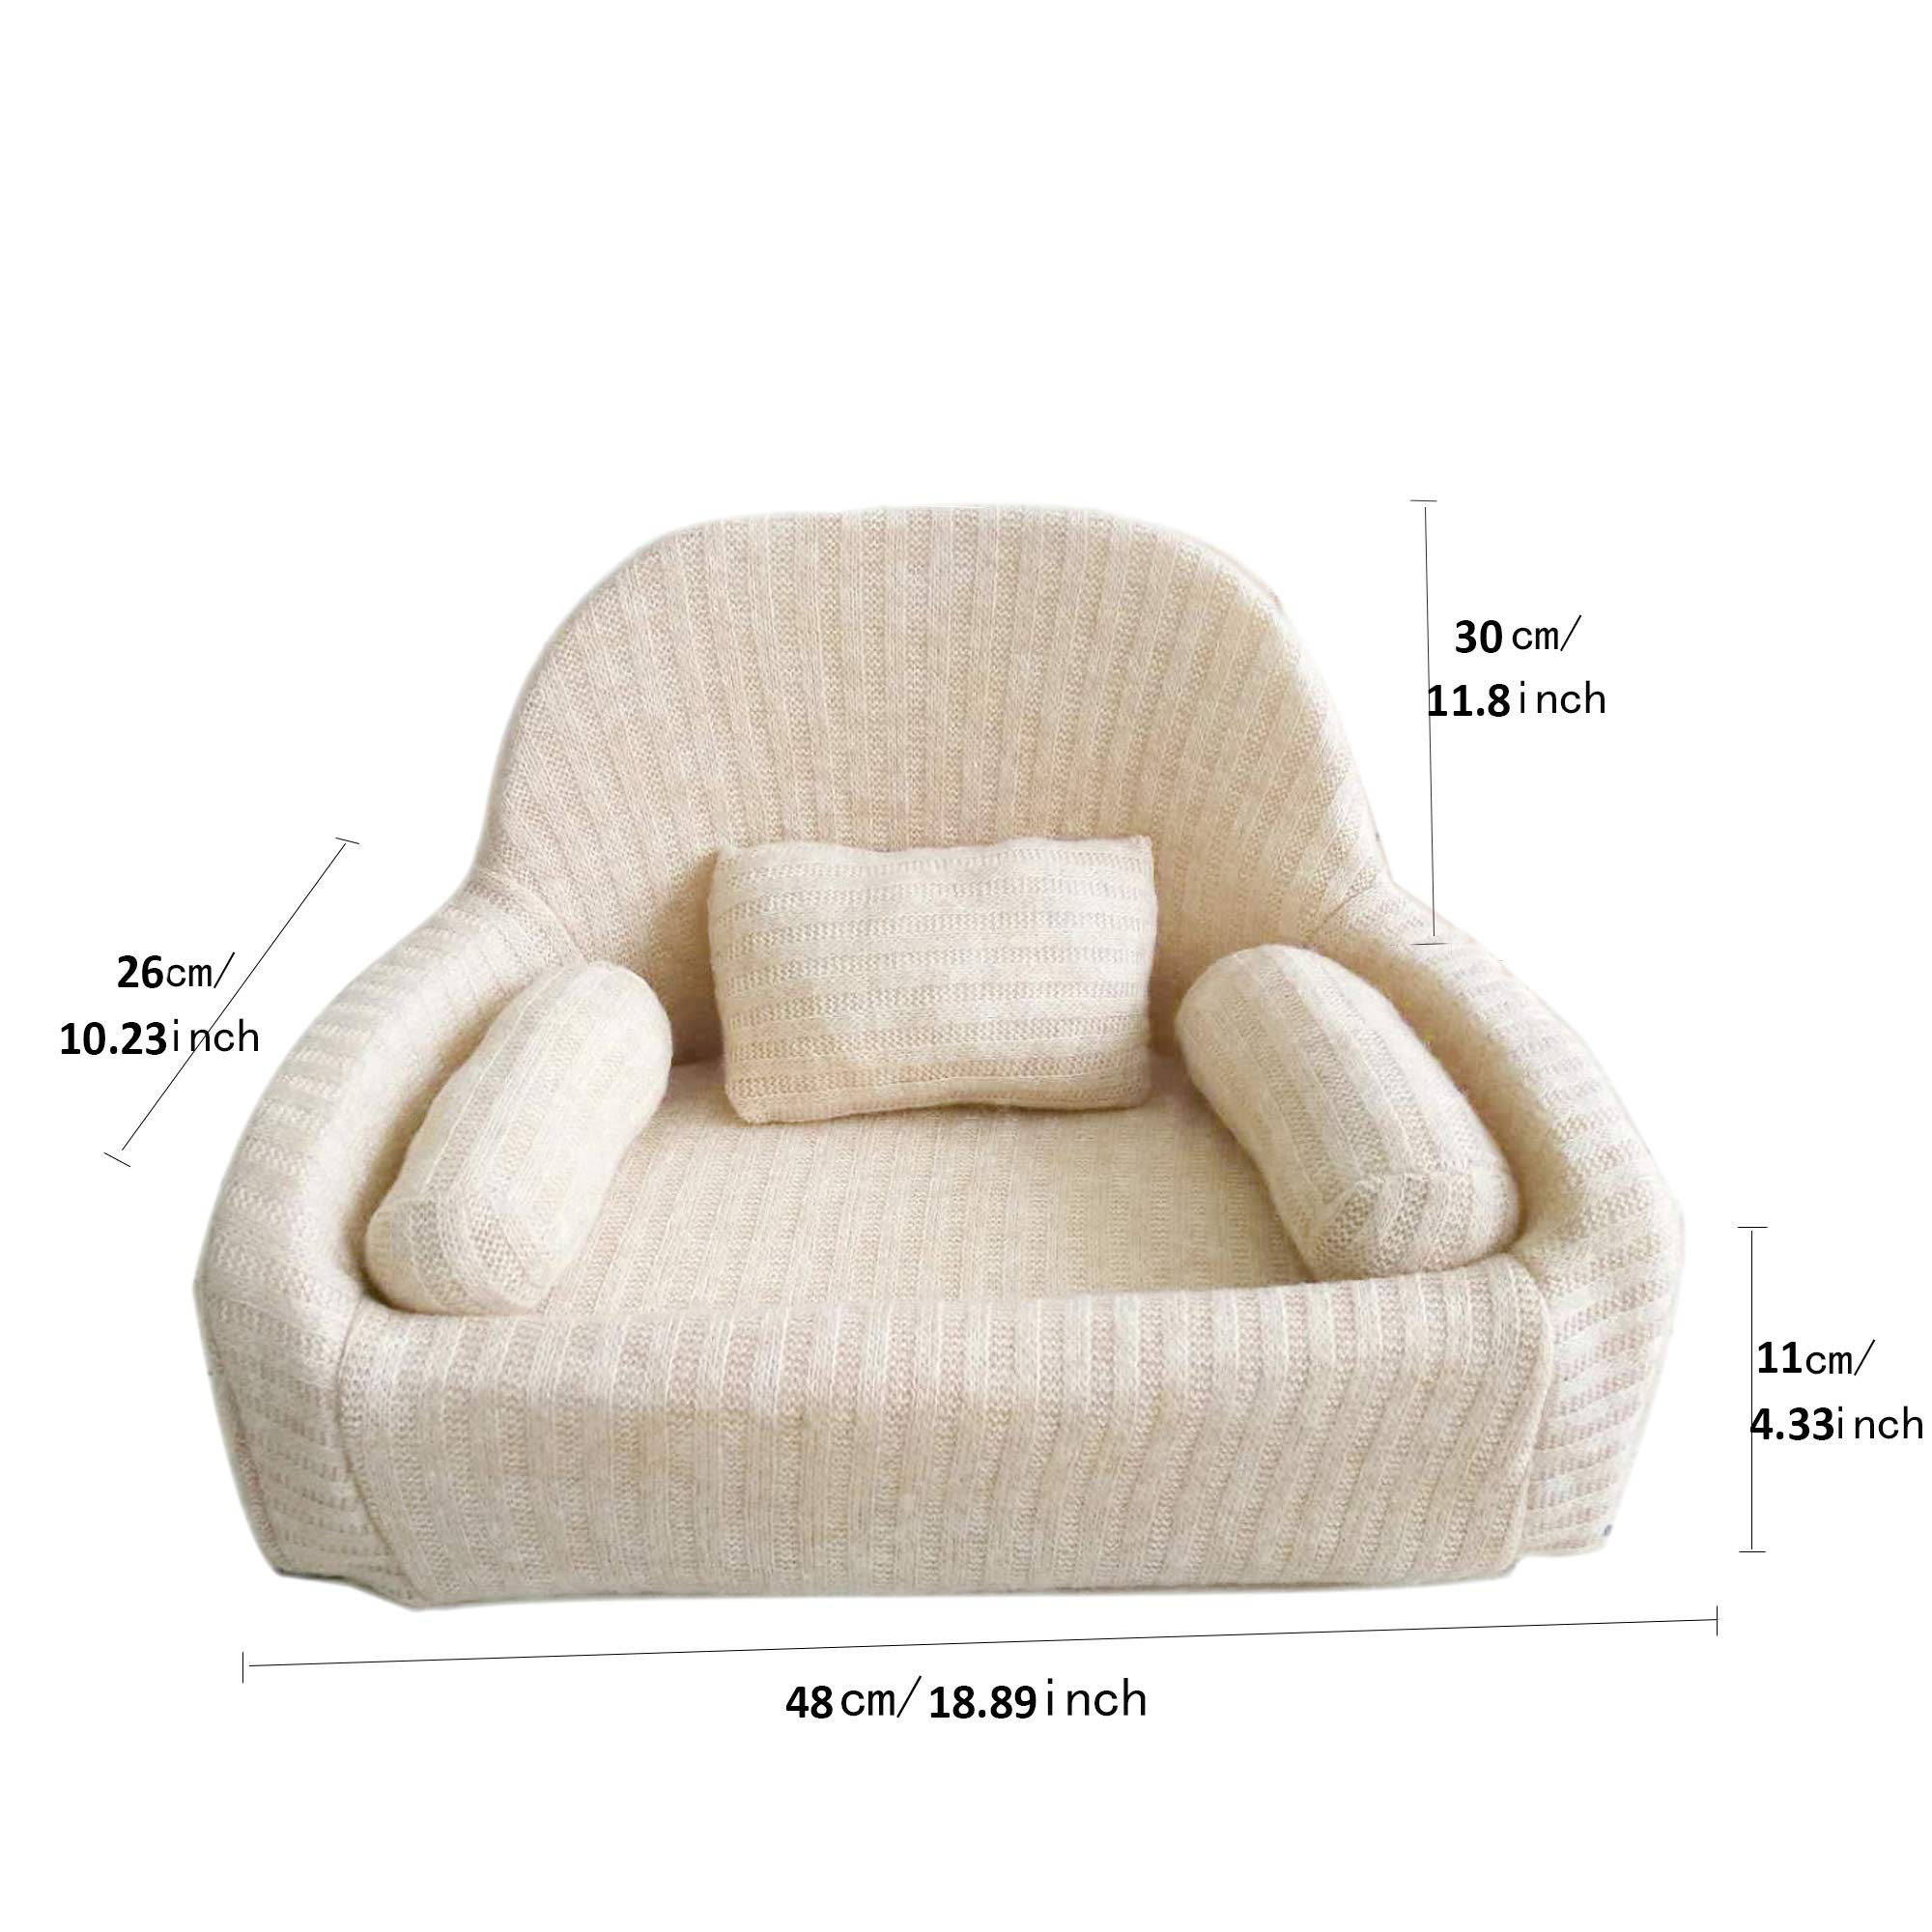 Couch Photography Props for Newborns 0-6 Months EPE Foam Professional Posing Aid Sofa Chair (0-6Month Beige Large) by Leo Skye